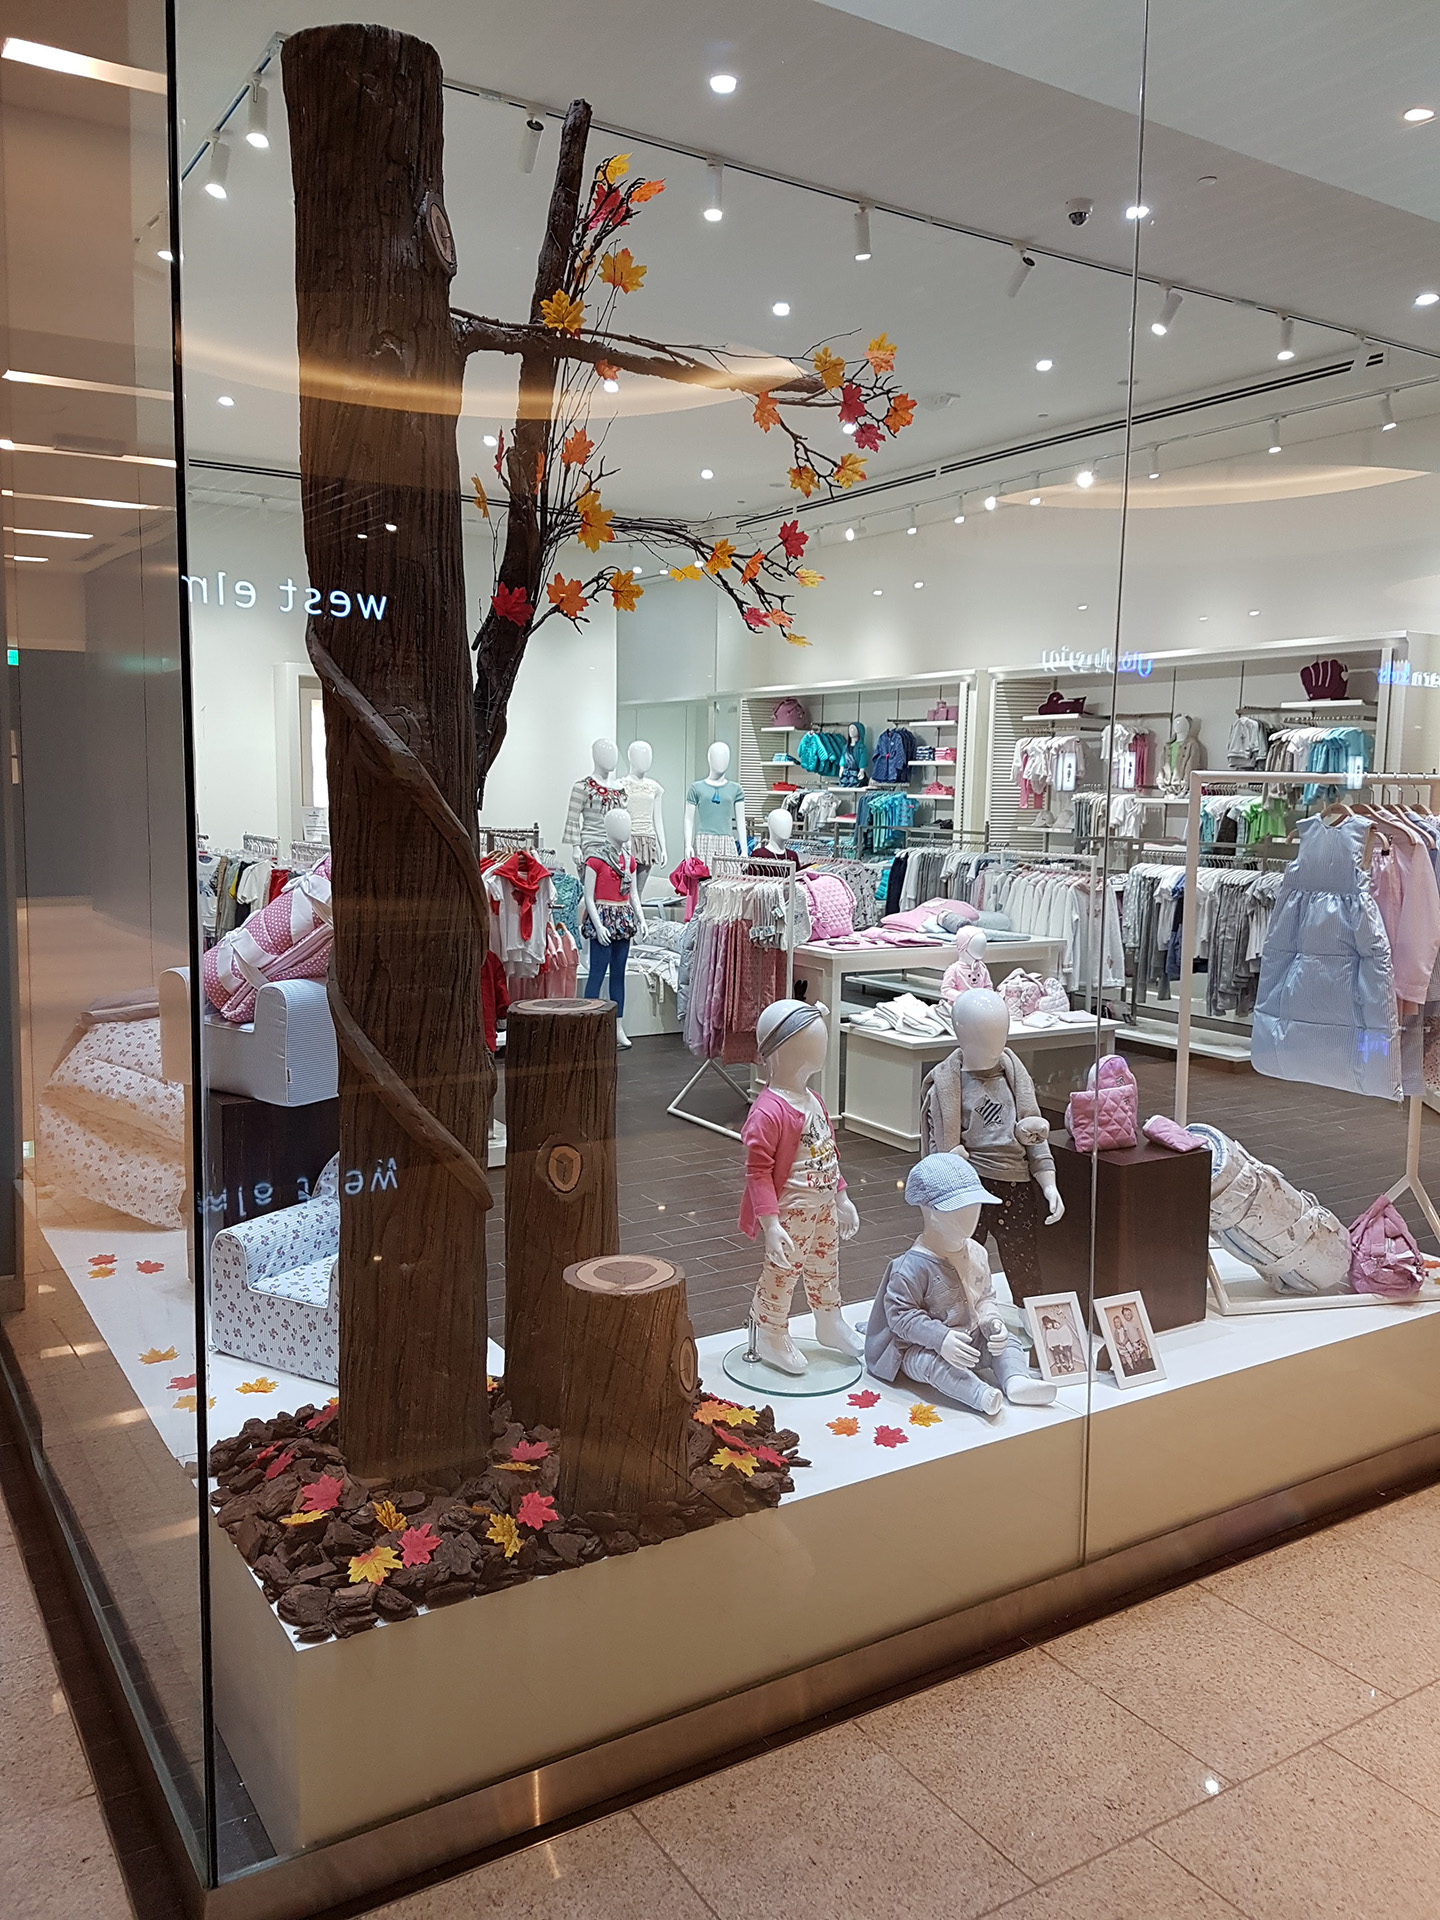 Babycare Window produced and installed by ME Visual, Qatar